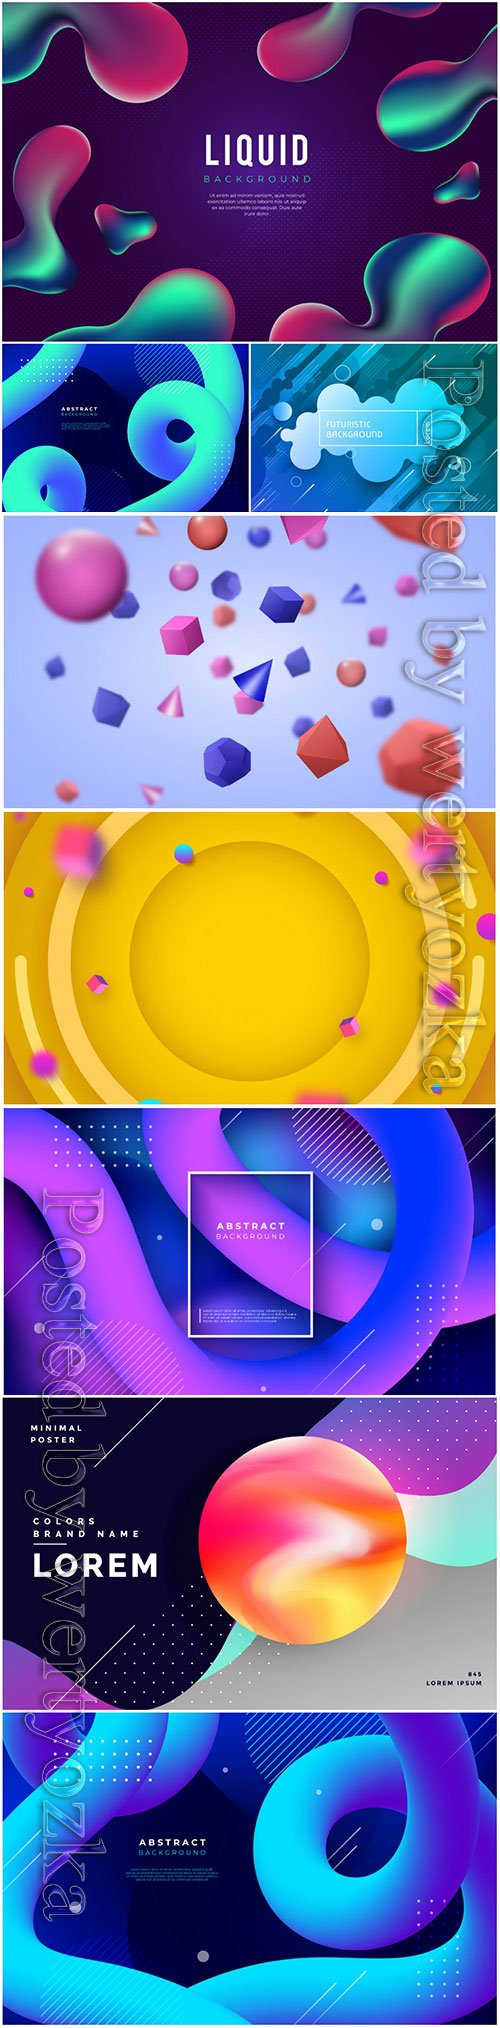 Abstract vector background with liquid shapes, 3d models template